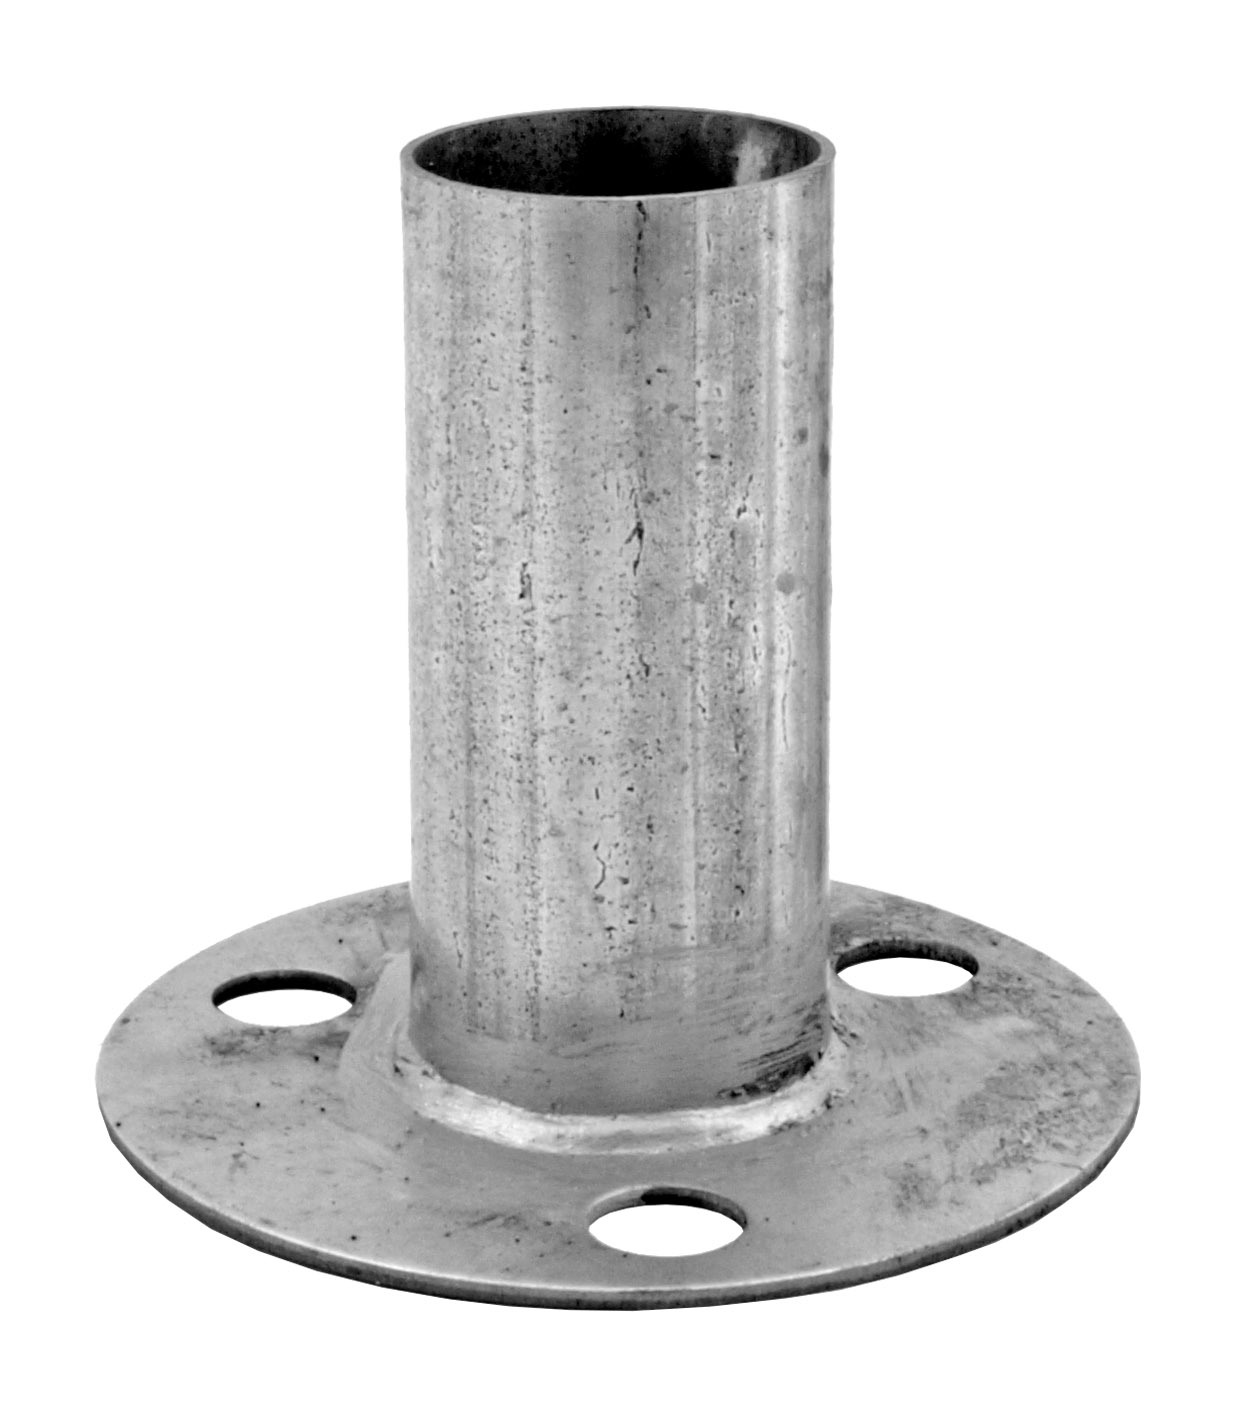 1 - 7/8 in Canopy Pipe Foot Pad for 1 - 5/8 in Coping Pipe